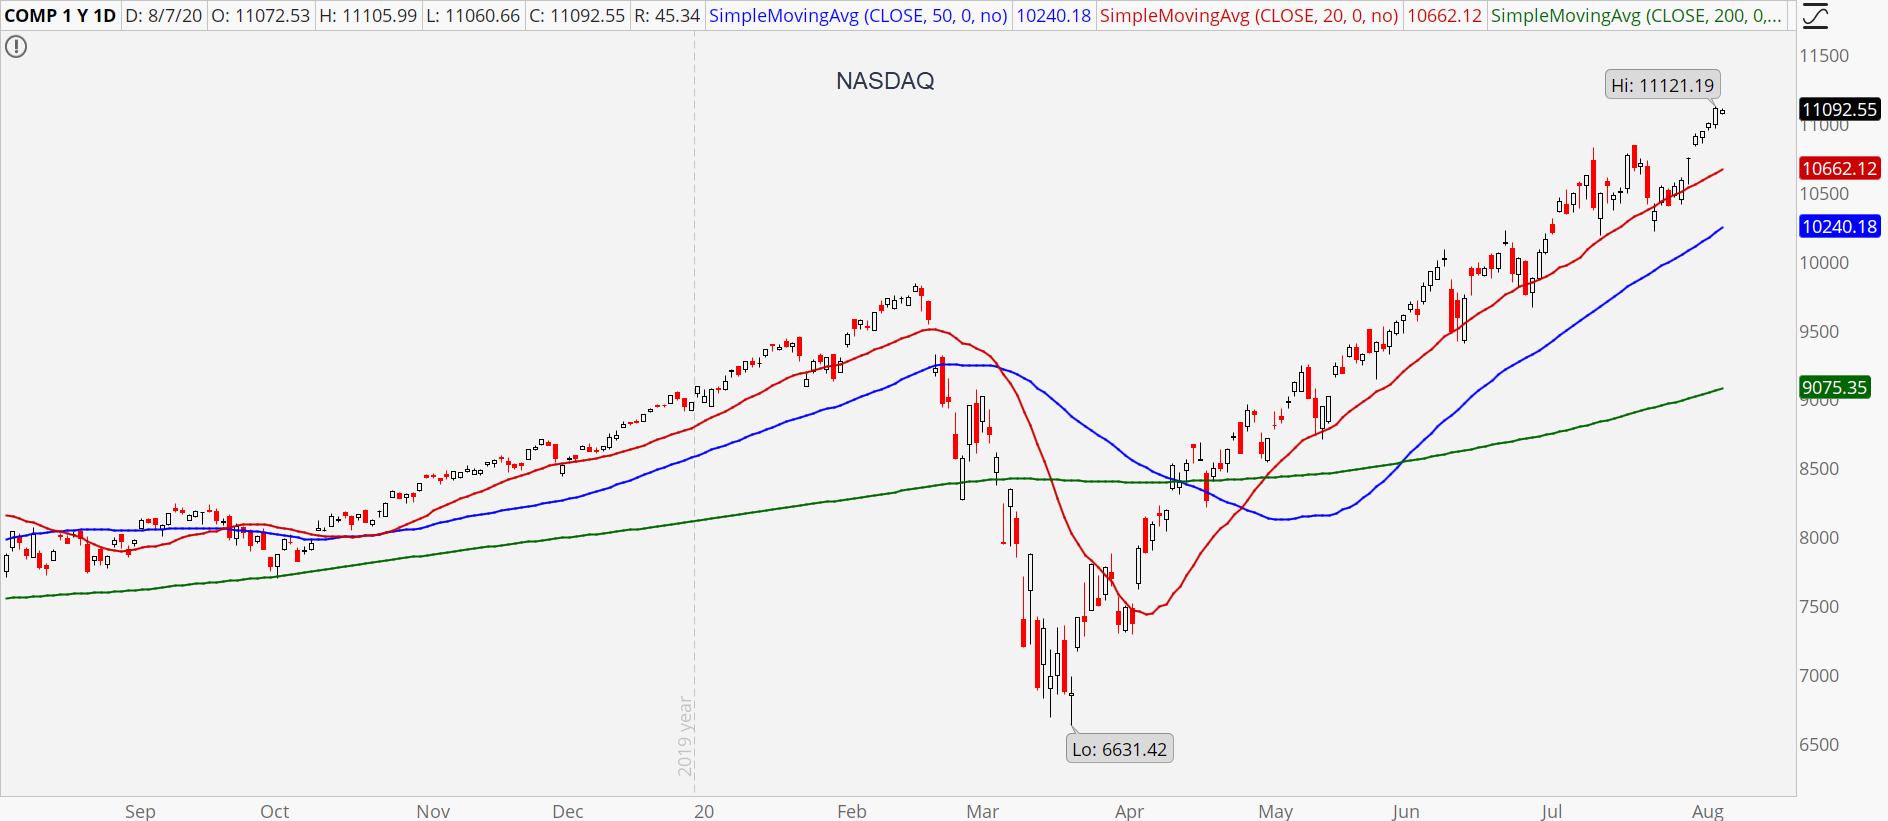 Nasdaq Composite chart showing powerful uptrend